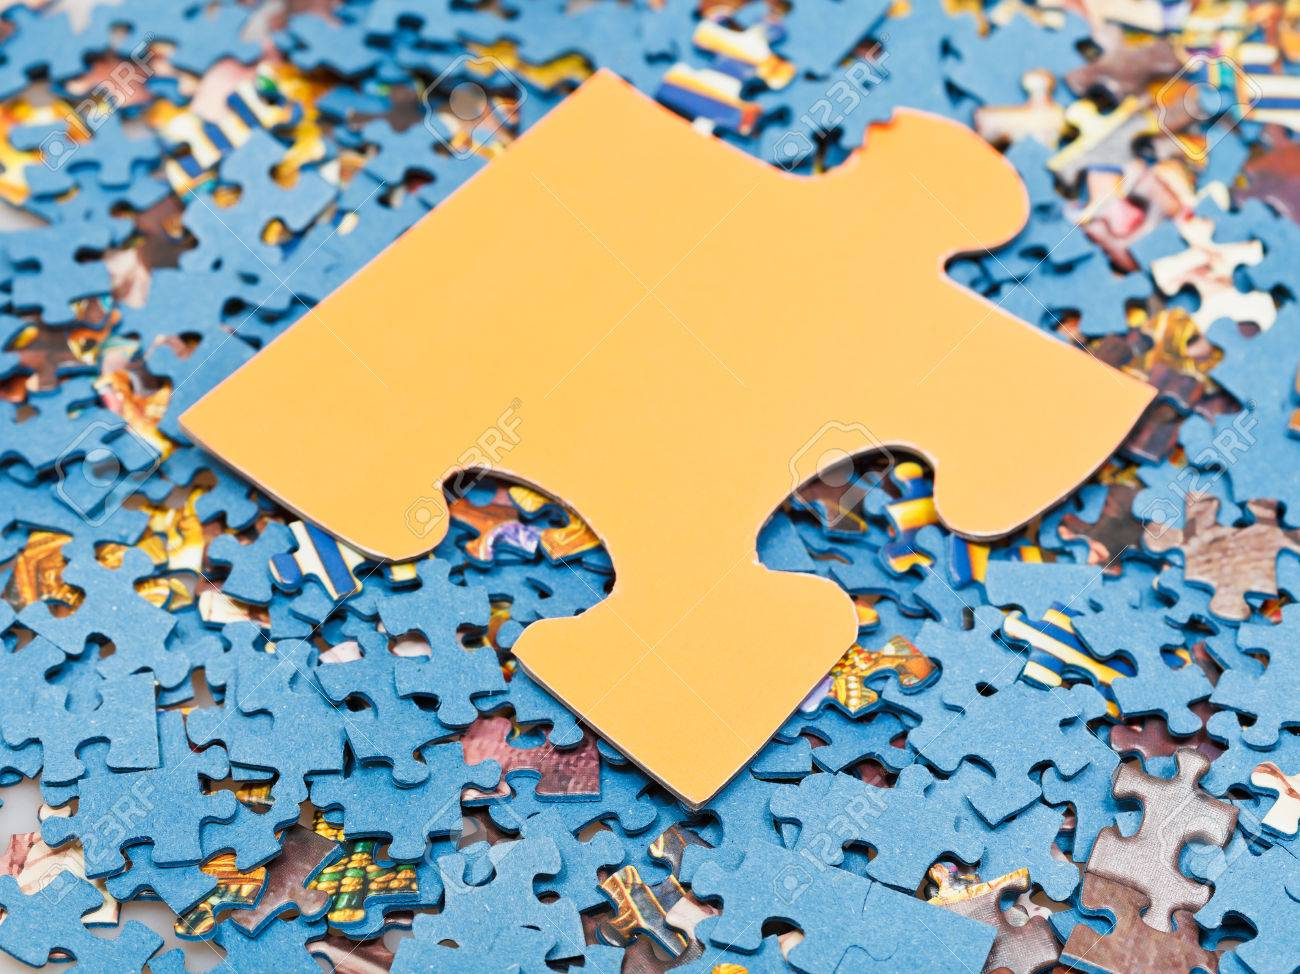 One Big Puzzle Piece On Pile Of Disassembled Little Jigsaw Puzzles Stock Photo